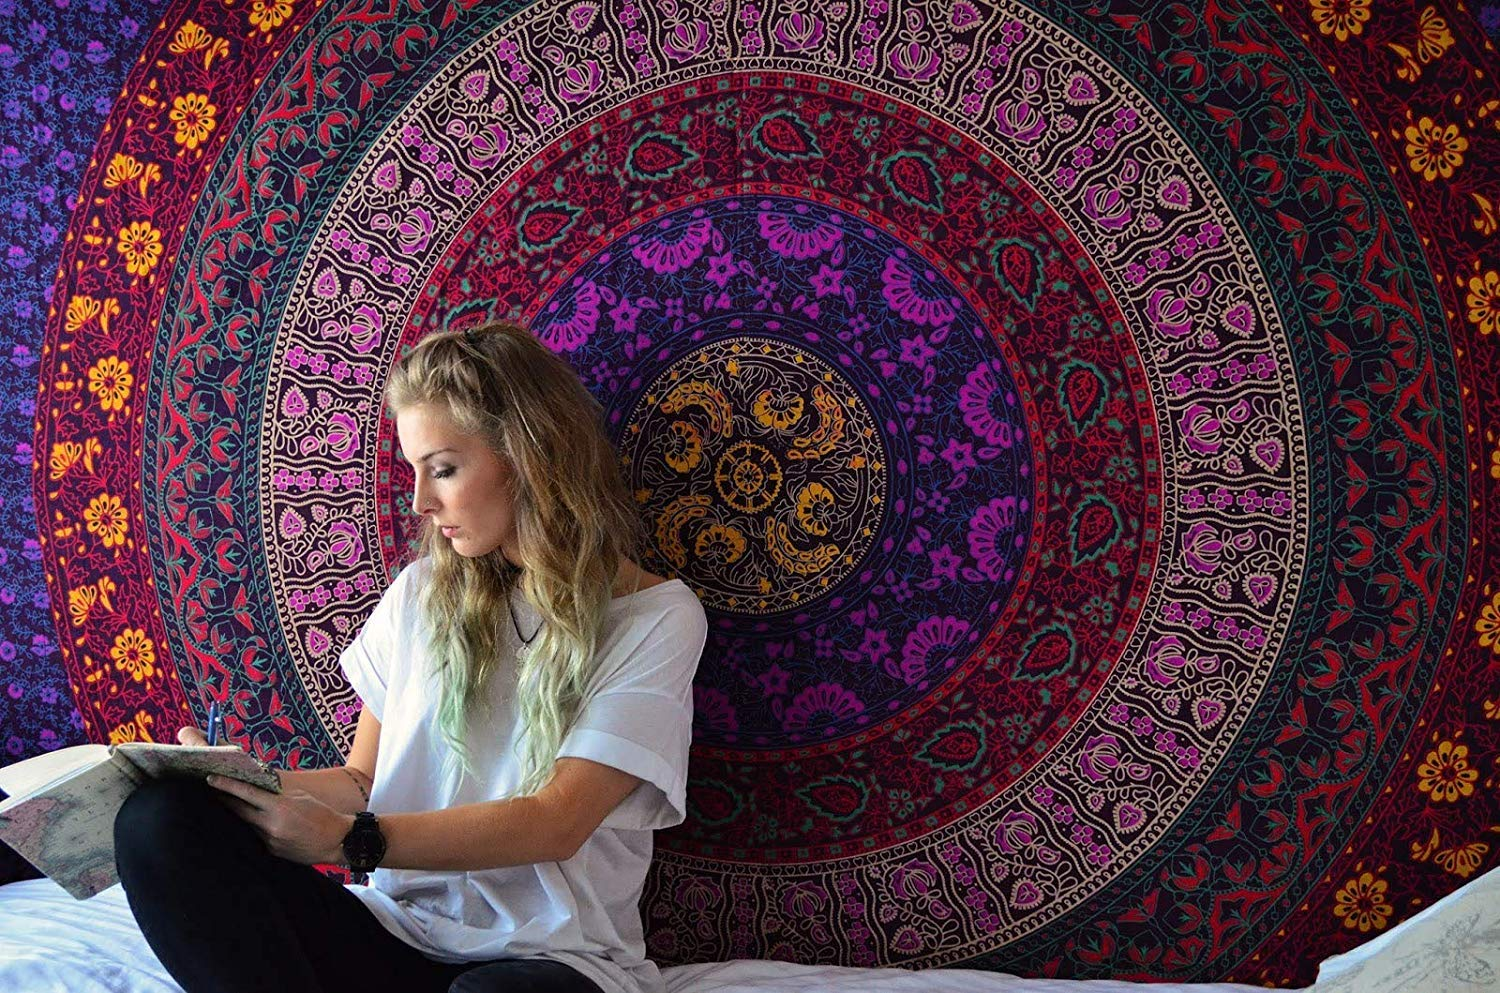 RAJRANG BRINGING RAJASTHAN TO YOU Colorful Hippie Mandala Tapestry - Boho Bohemian Tapestries Indian Dorm Decor Psychedelic Tapestry Wall Hanging Ethnic Decorative Art - Multicolor - 84 X 54 in